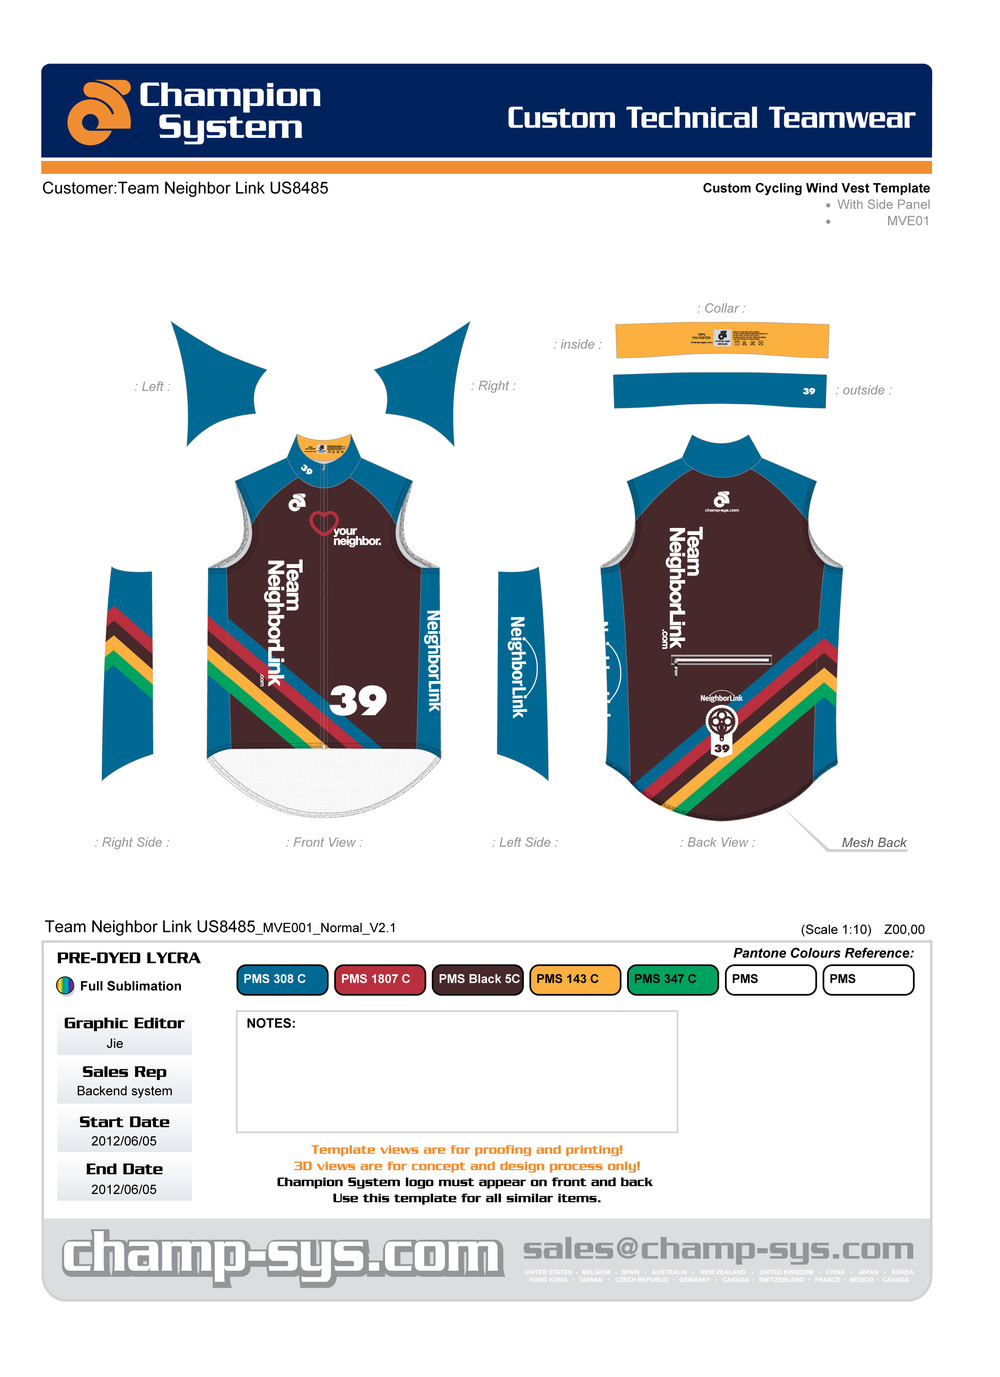 Cycling Wind Vest Design